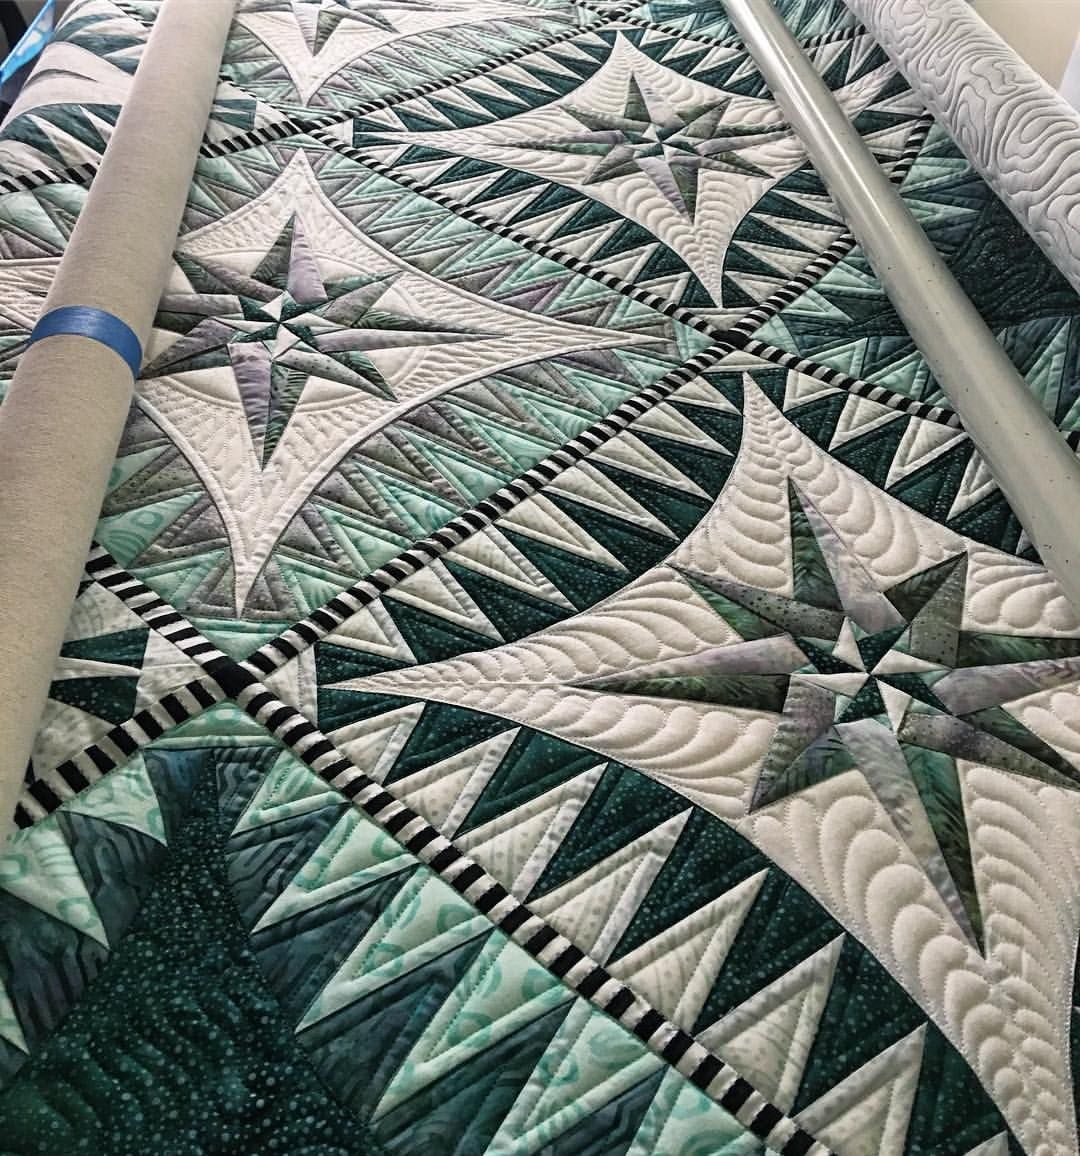 Pin By Rebecca Bostick On Quilting Designs Quilts Quilt